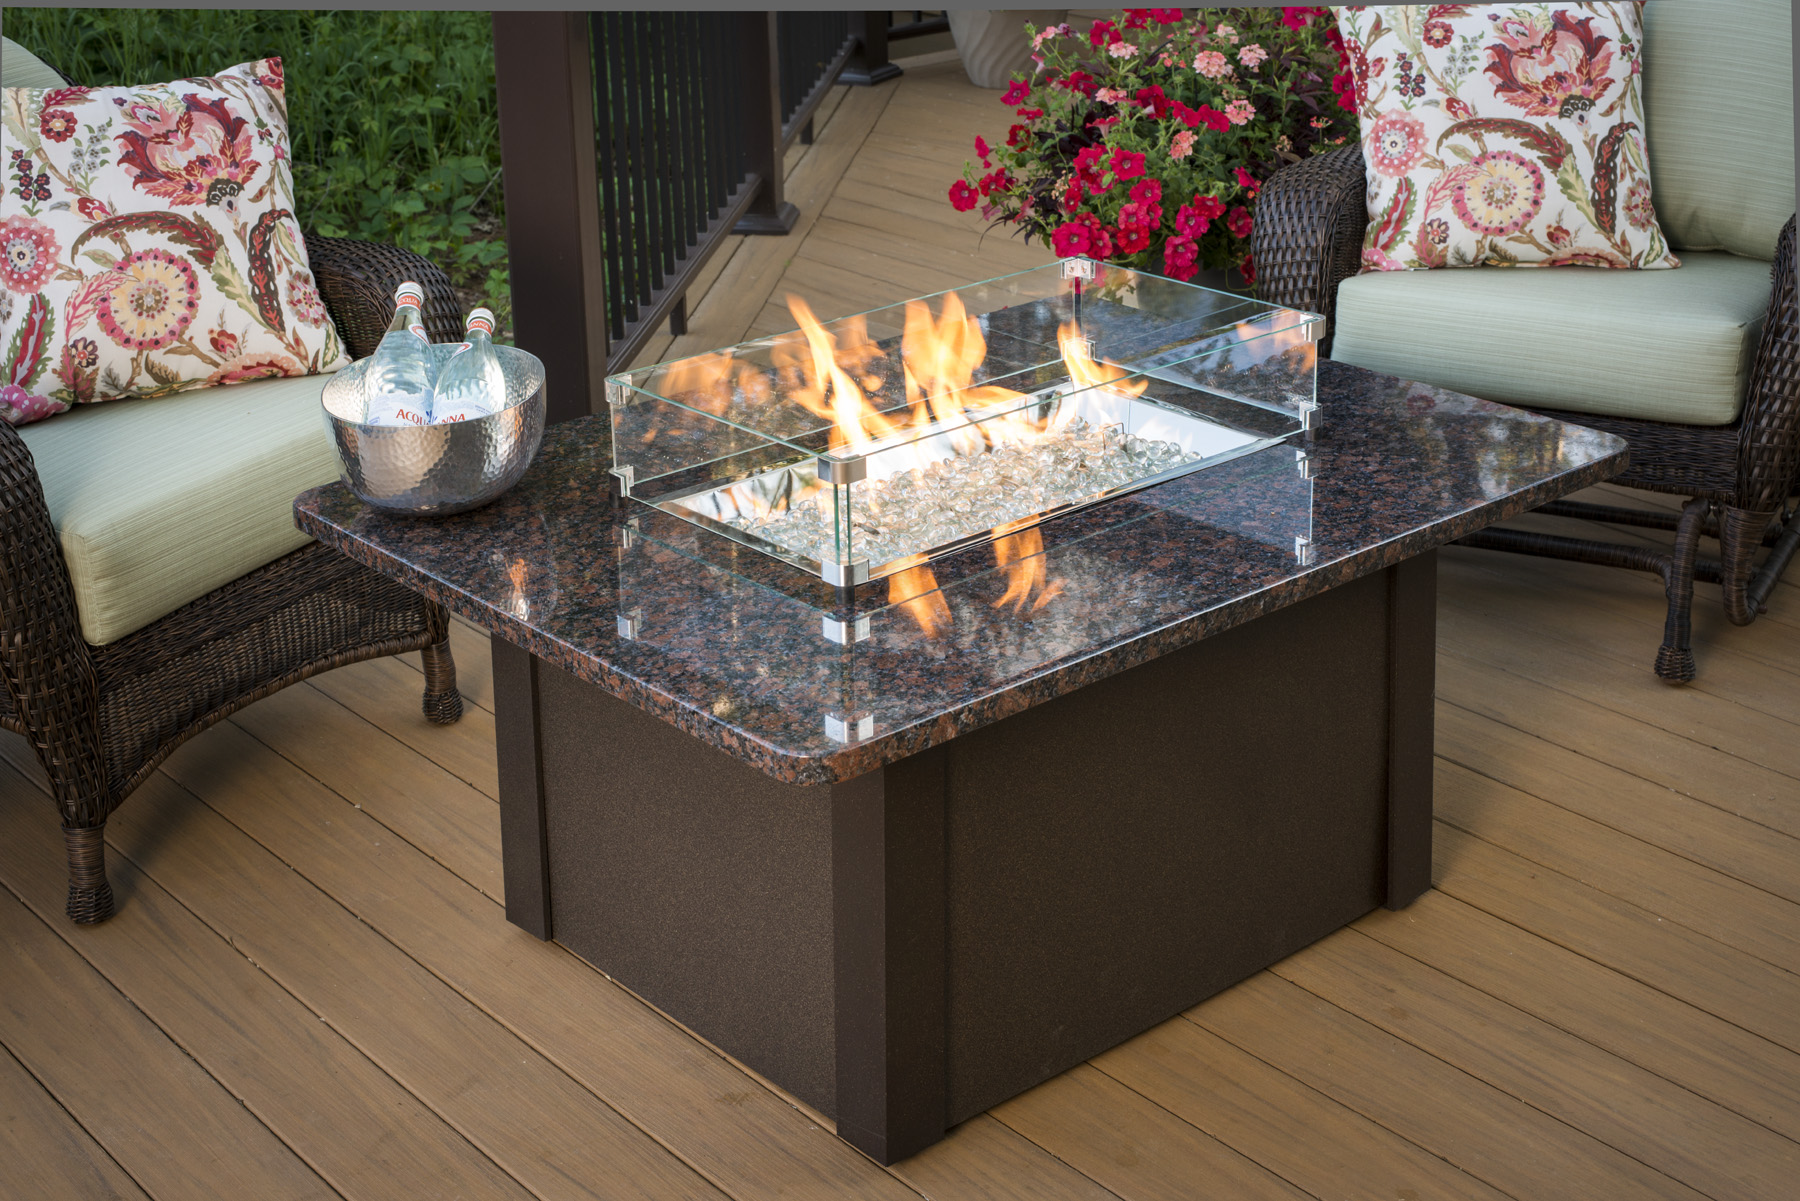 Fireplace Tables Outdoor Diy Fire Pit Fireplace Design Ideas